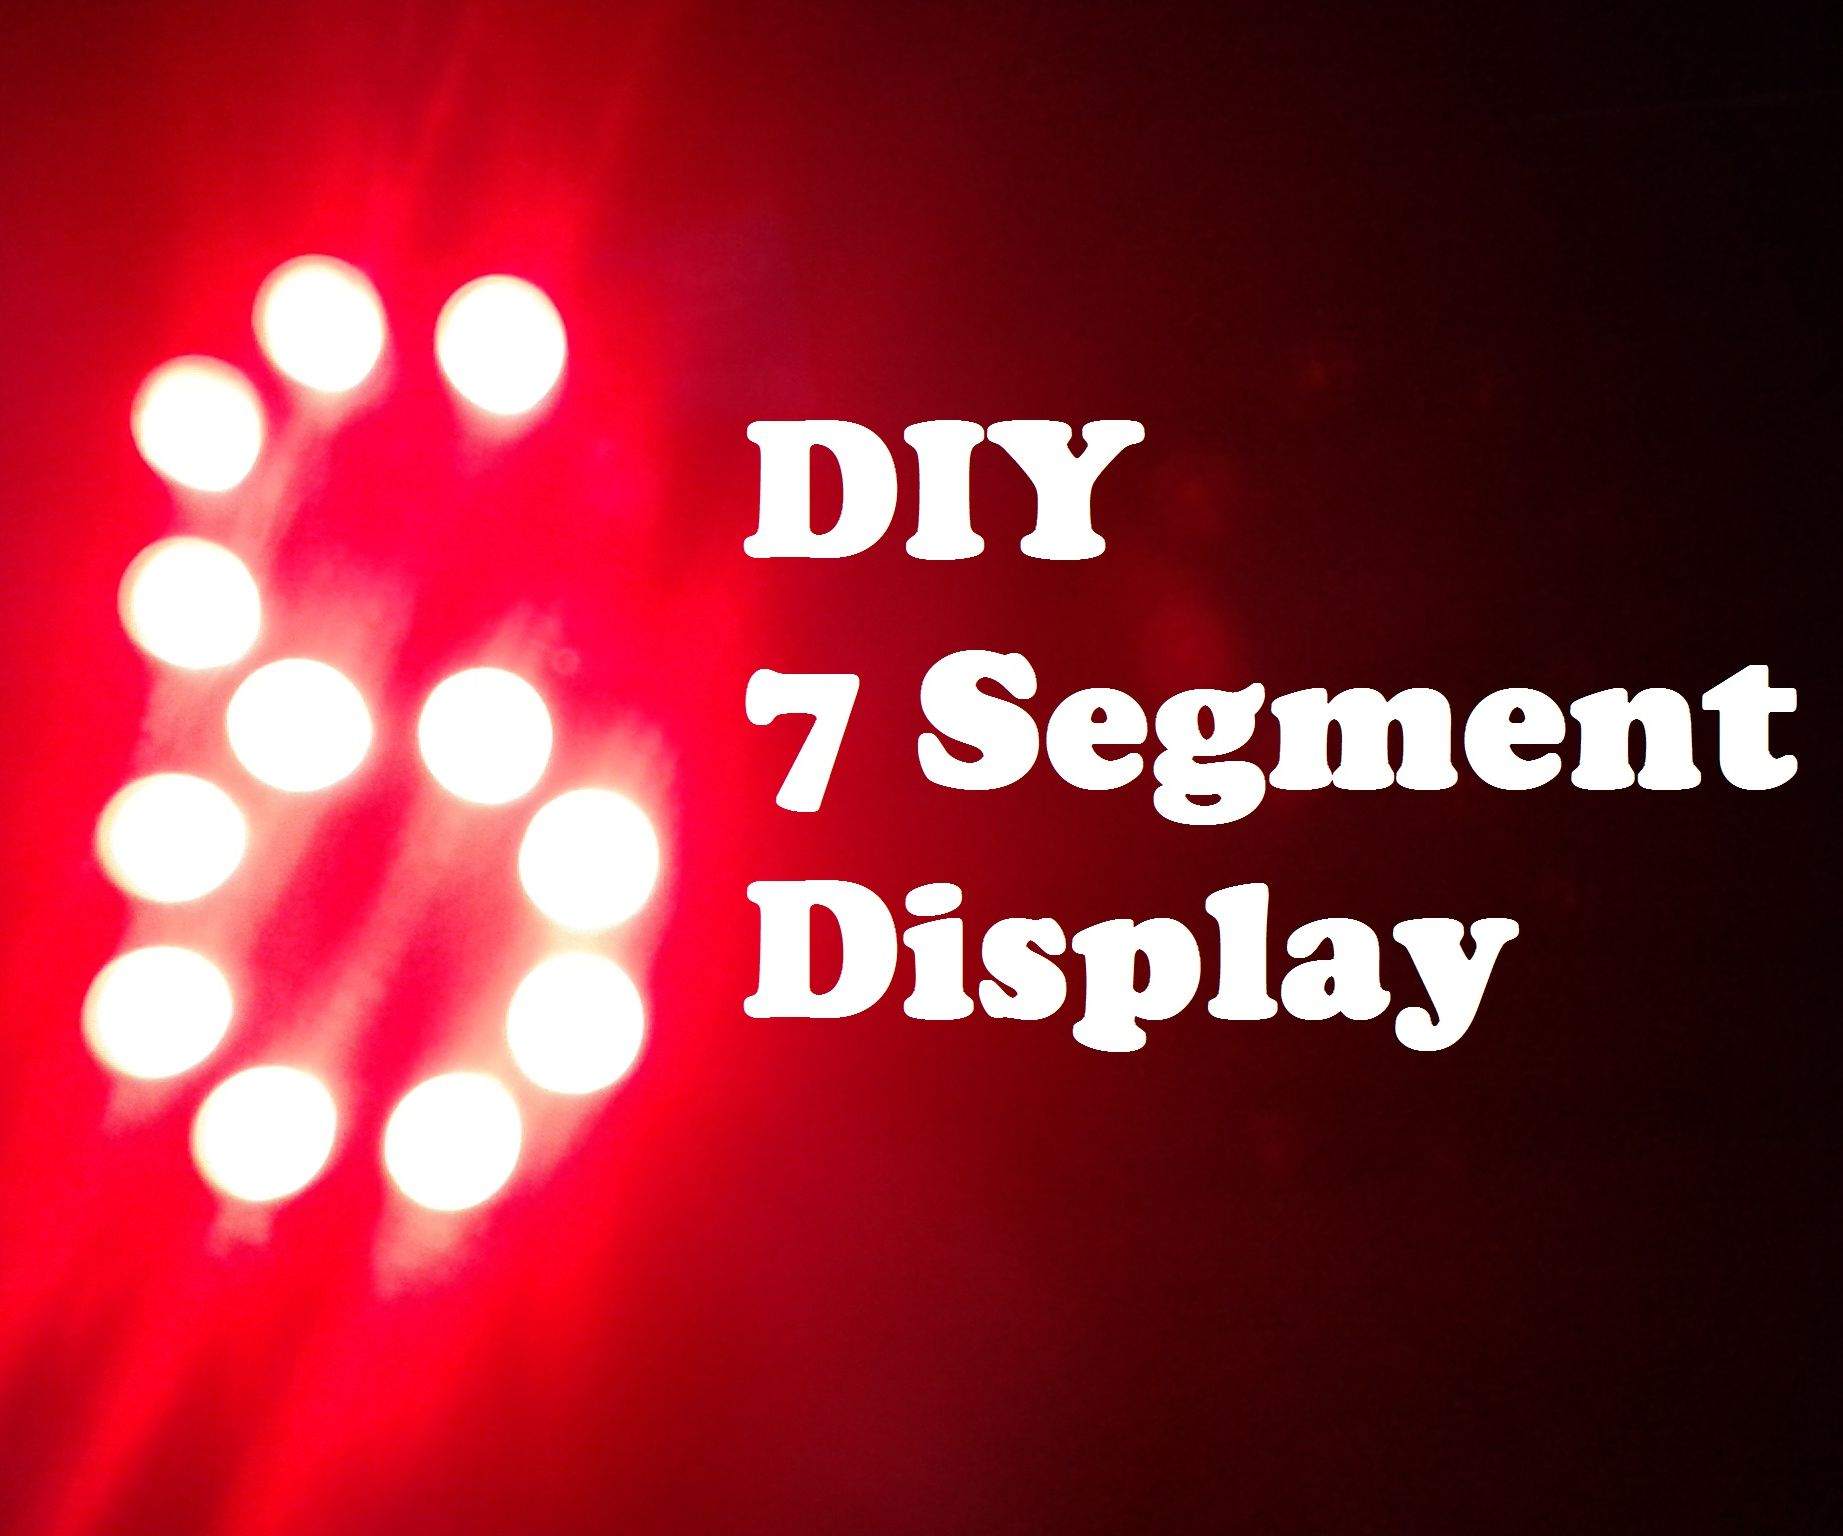 Diy 7 Segment Display 5 Steps With Pictures The Each Led Symbol Into 7segment It May Look Like This